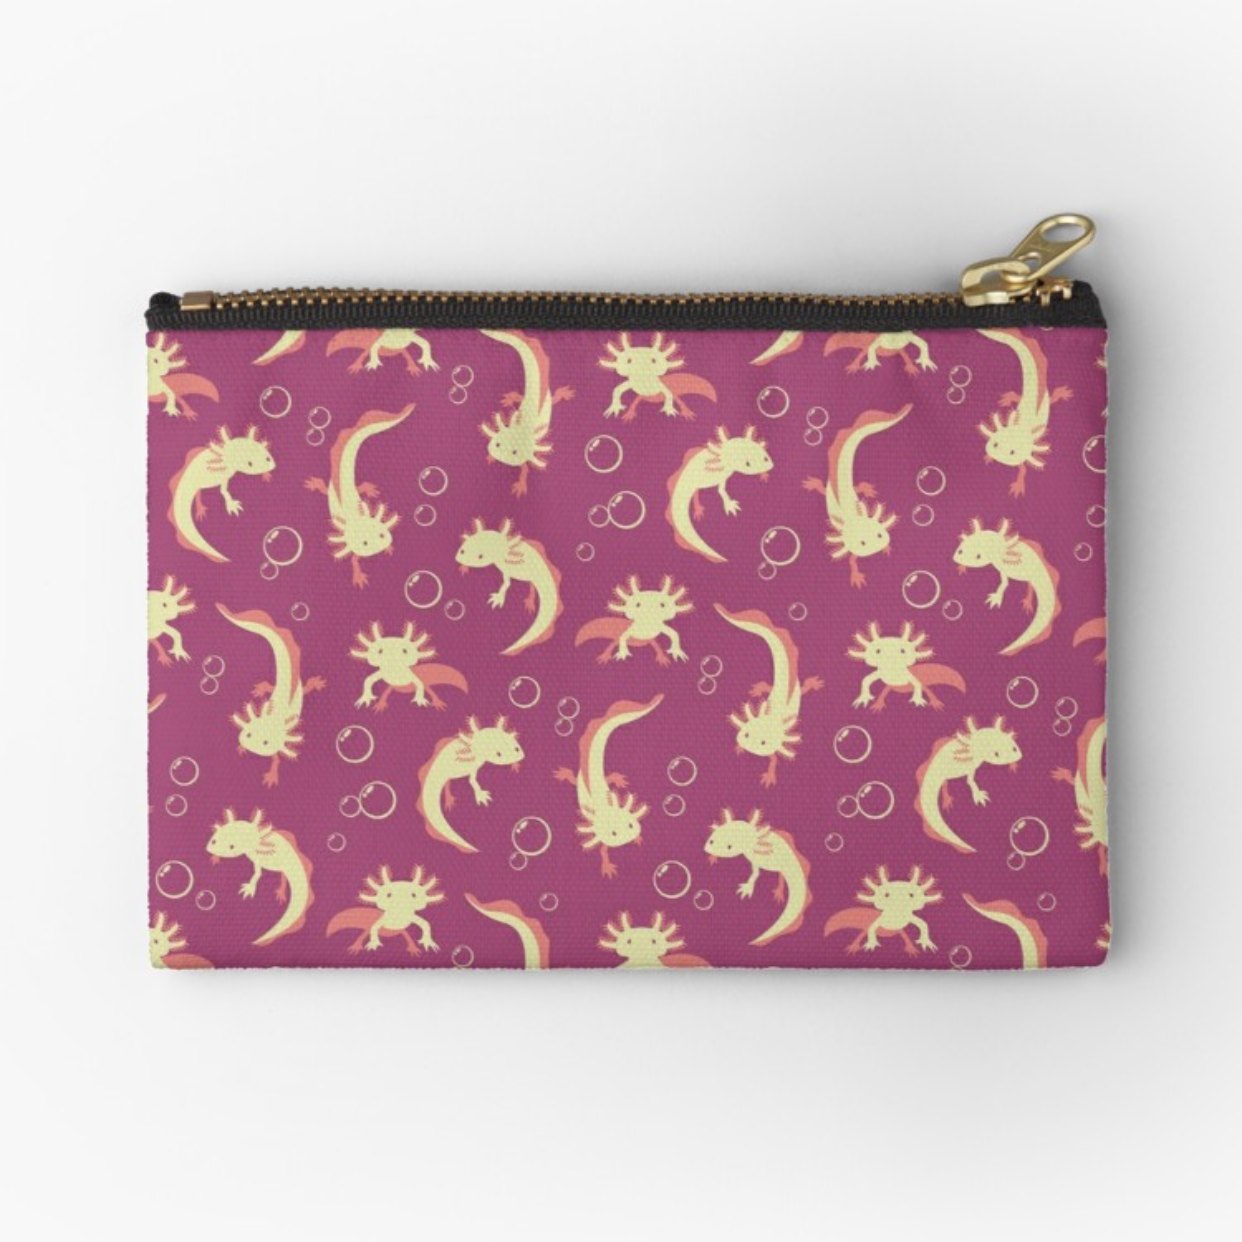 Relaxolotl rose pouch from Redbubble